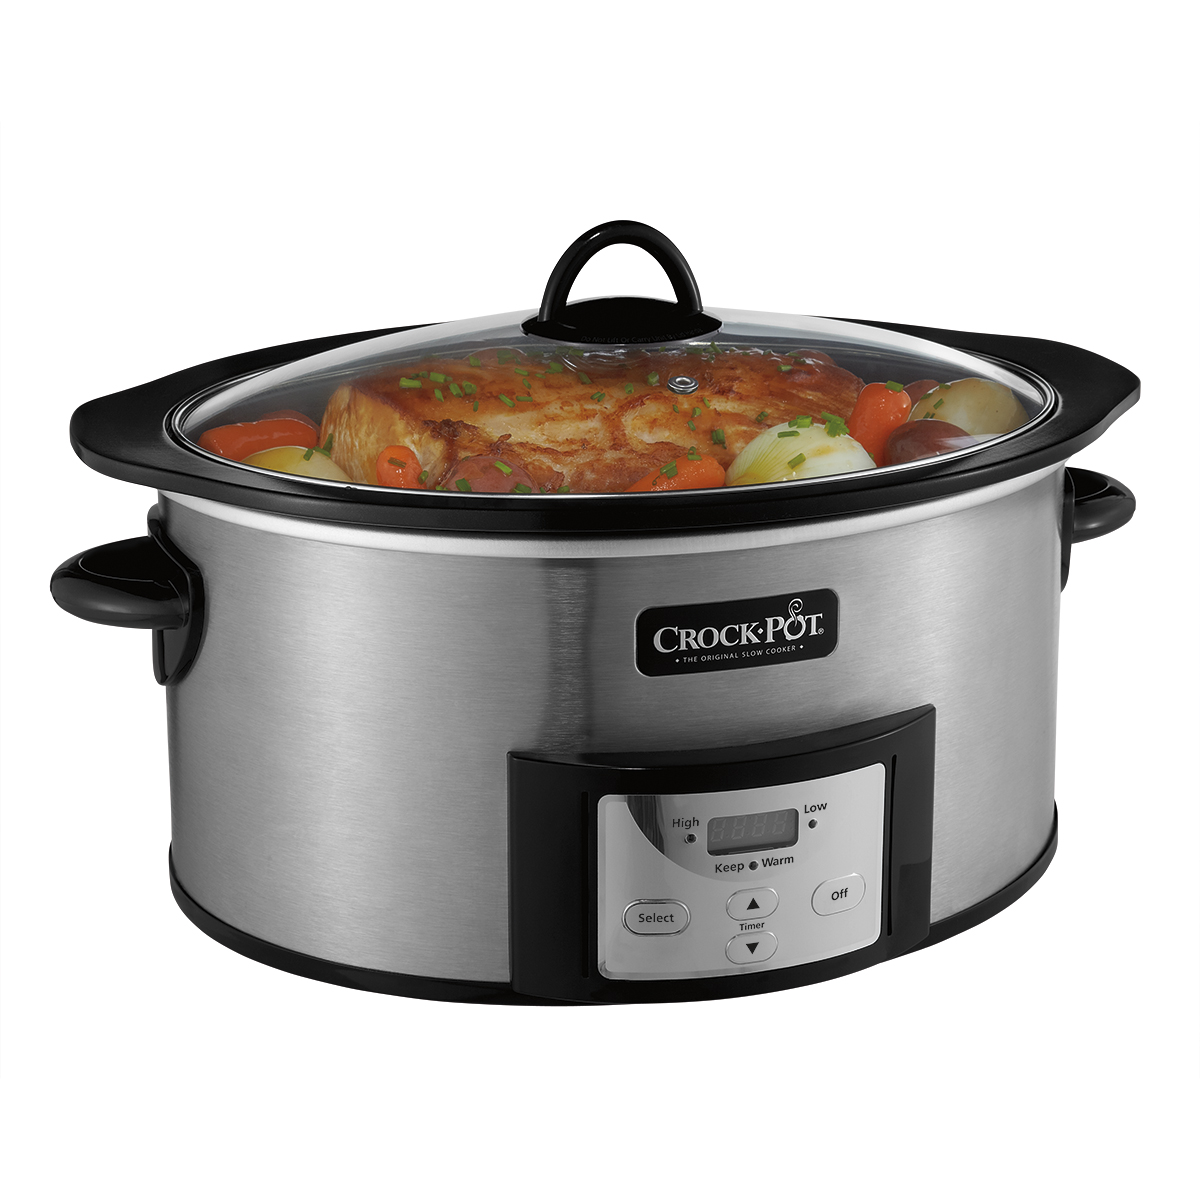 Crock-Pot 6-Quart Programmable Slow Cooker with Stovetop-Safe Cooking Pot